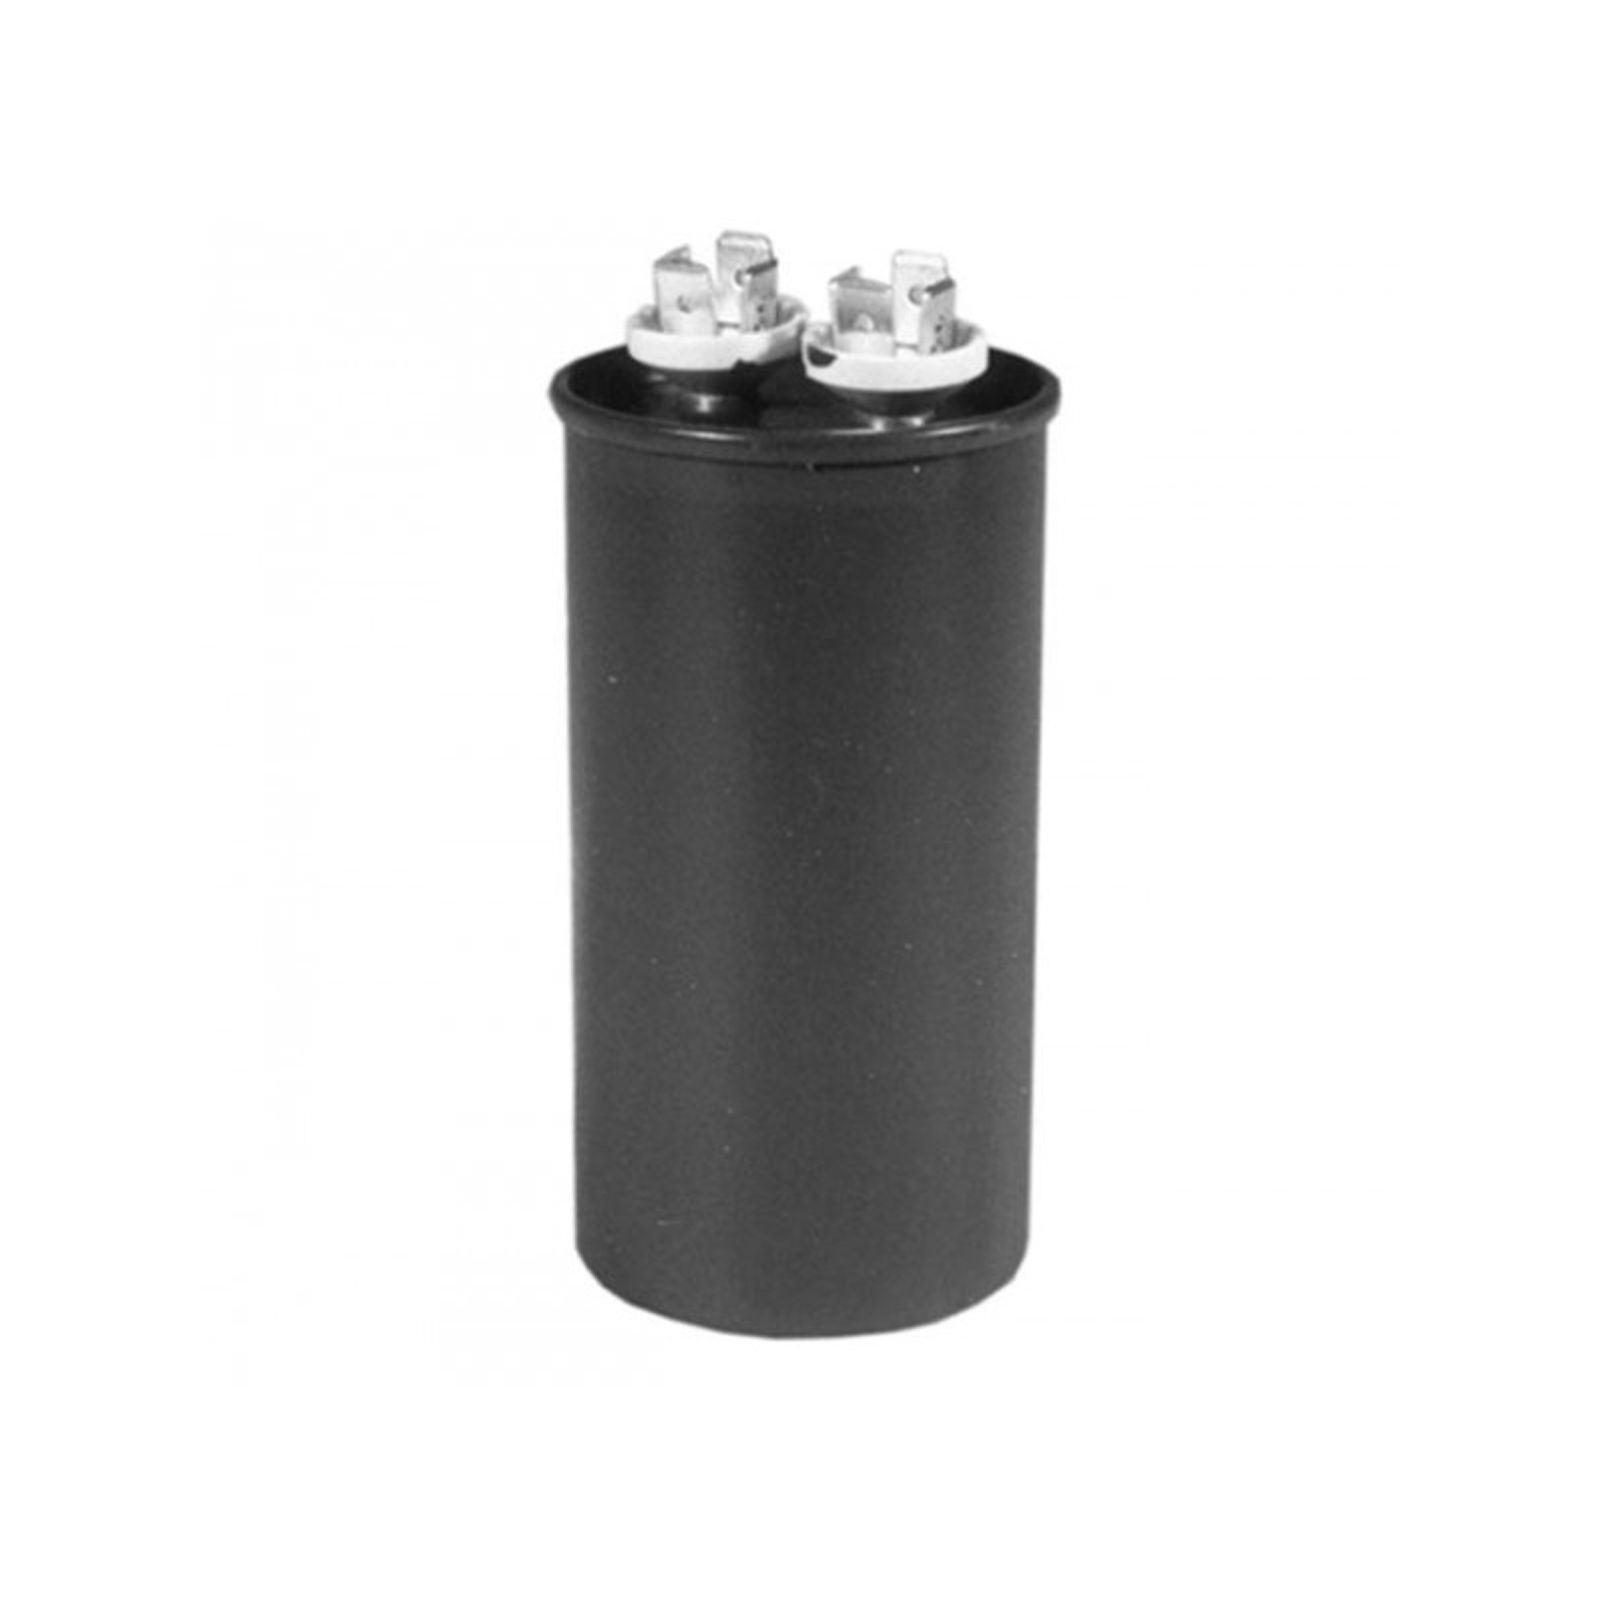 Rheem 43-25136-29 Capacitor - 25/440 Single Round